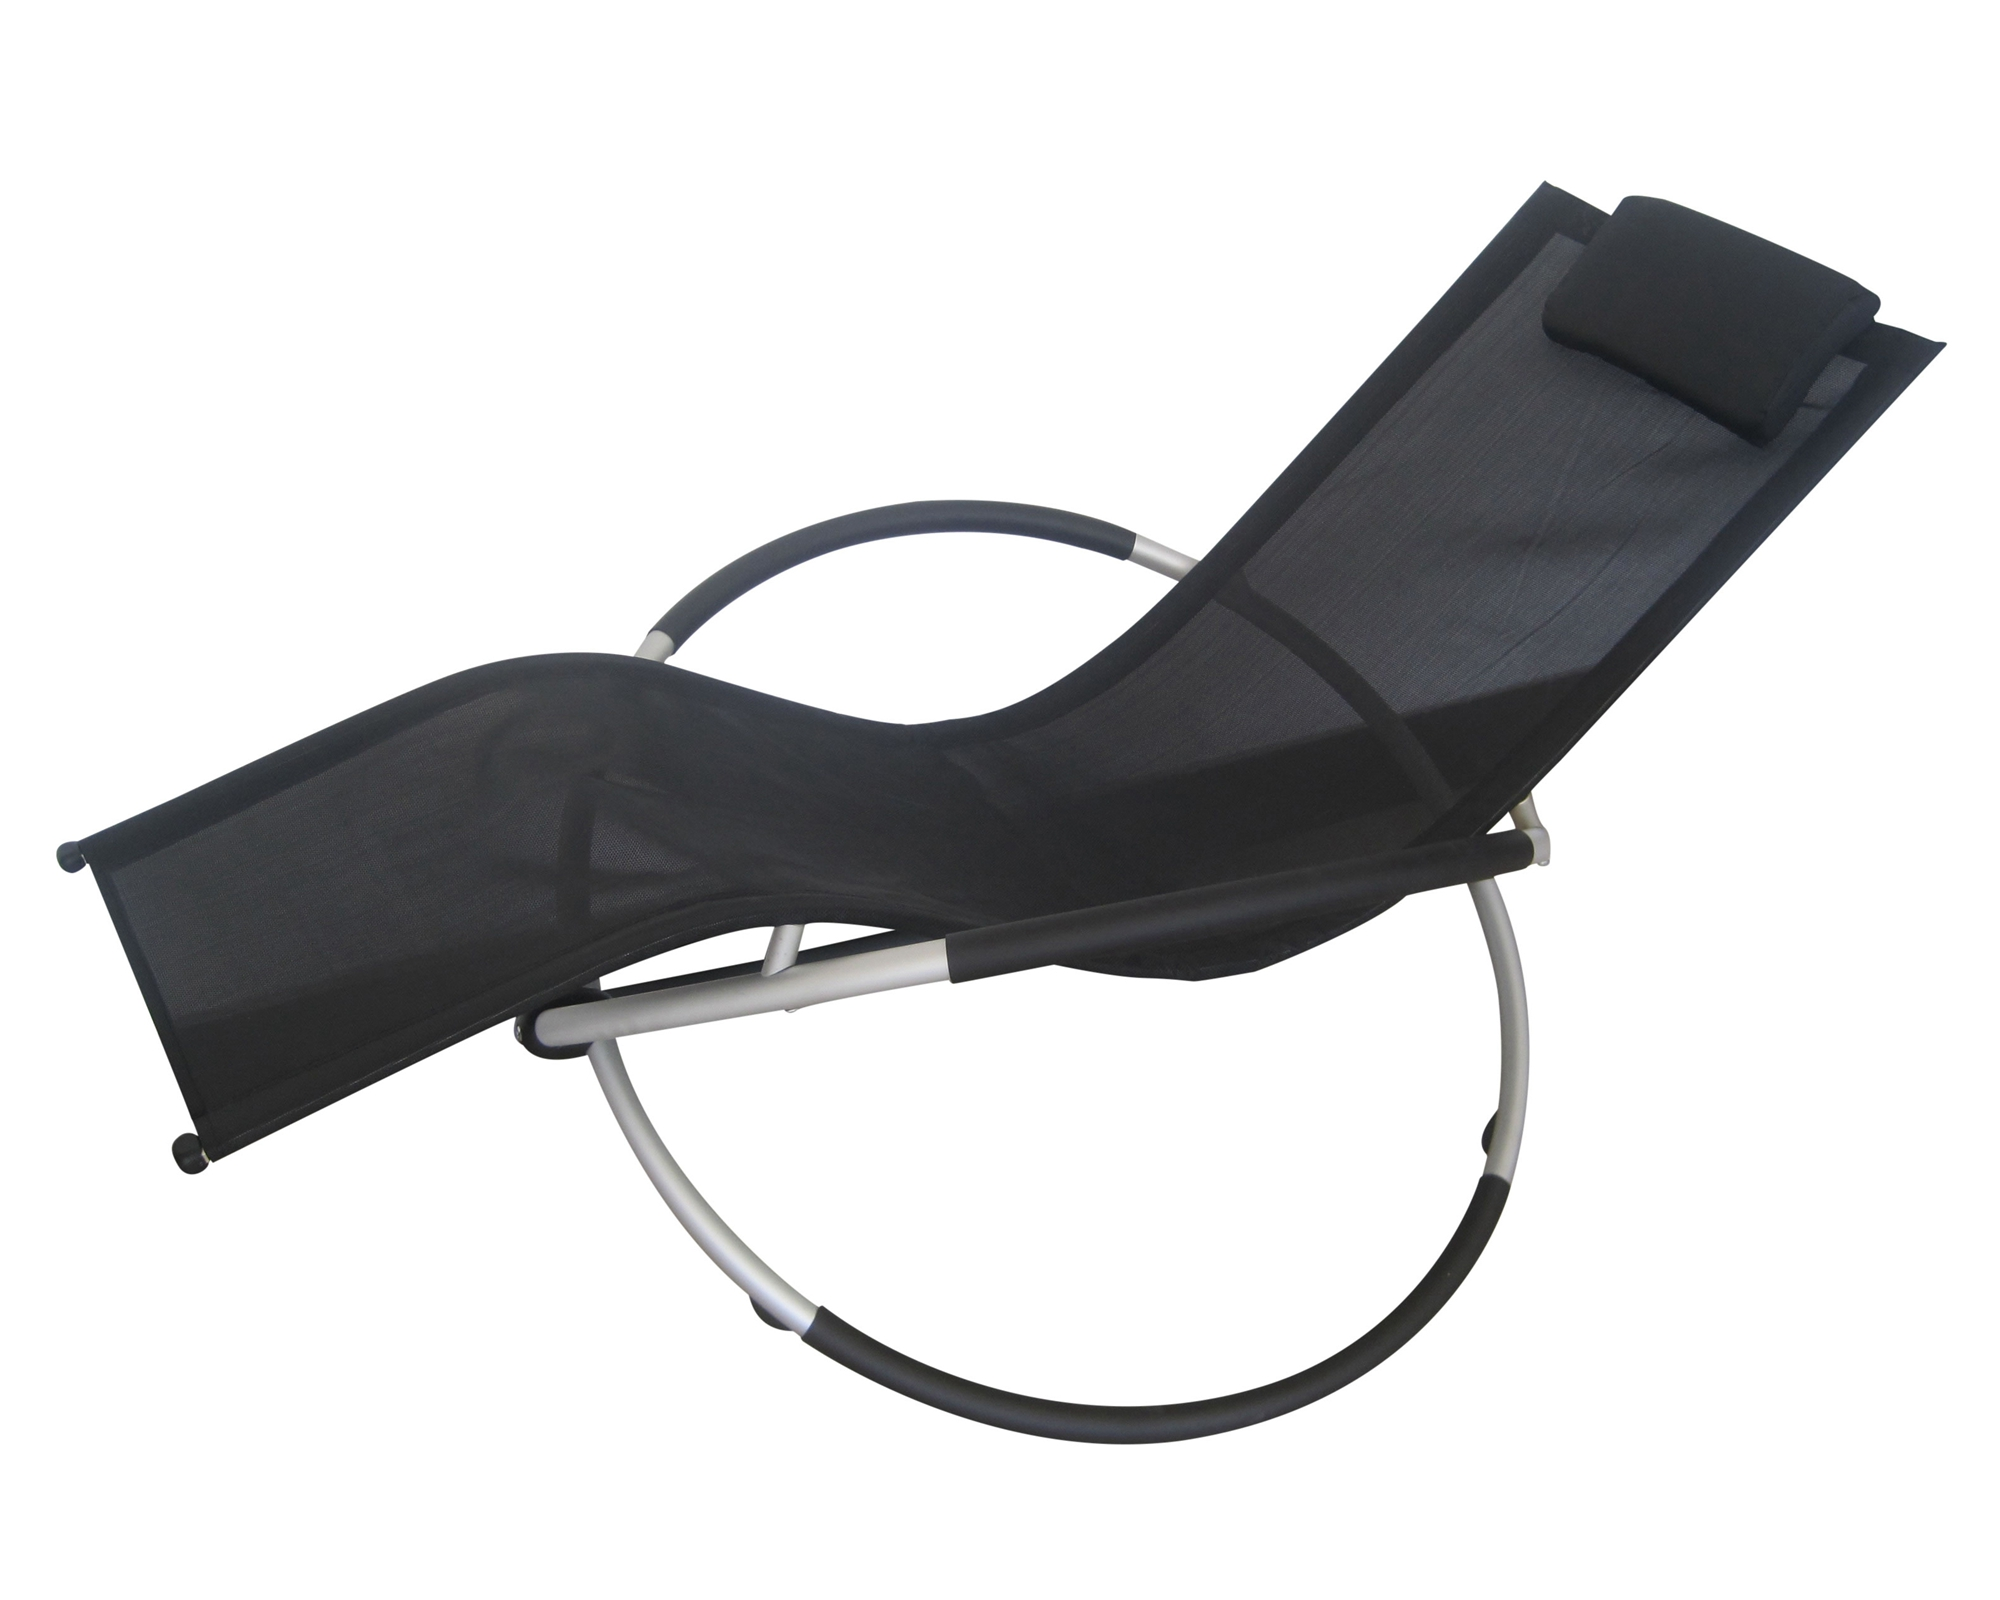 Folding Sun Loungers Outdoor Furniture peenmedia